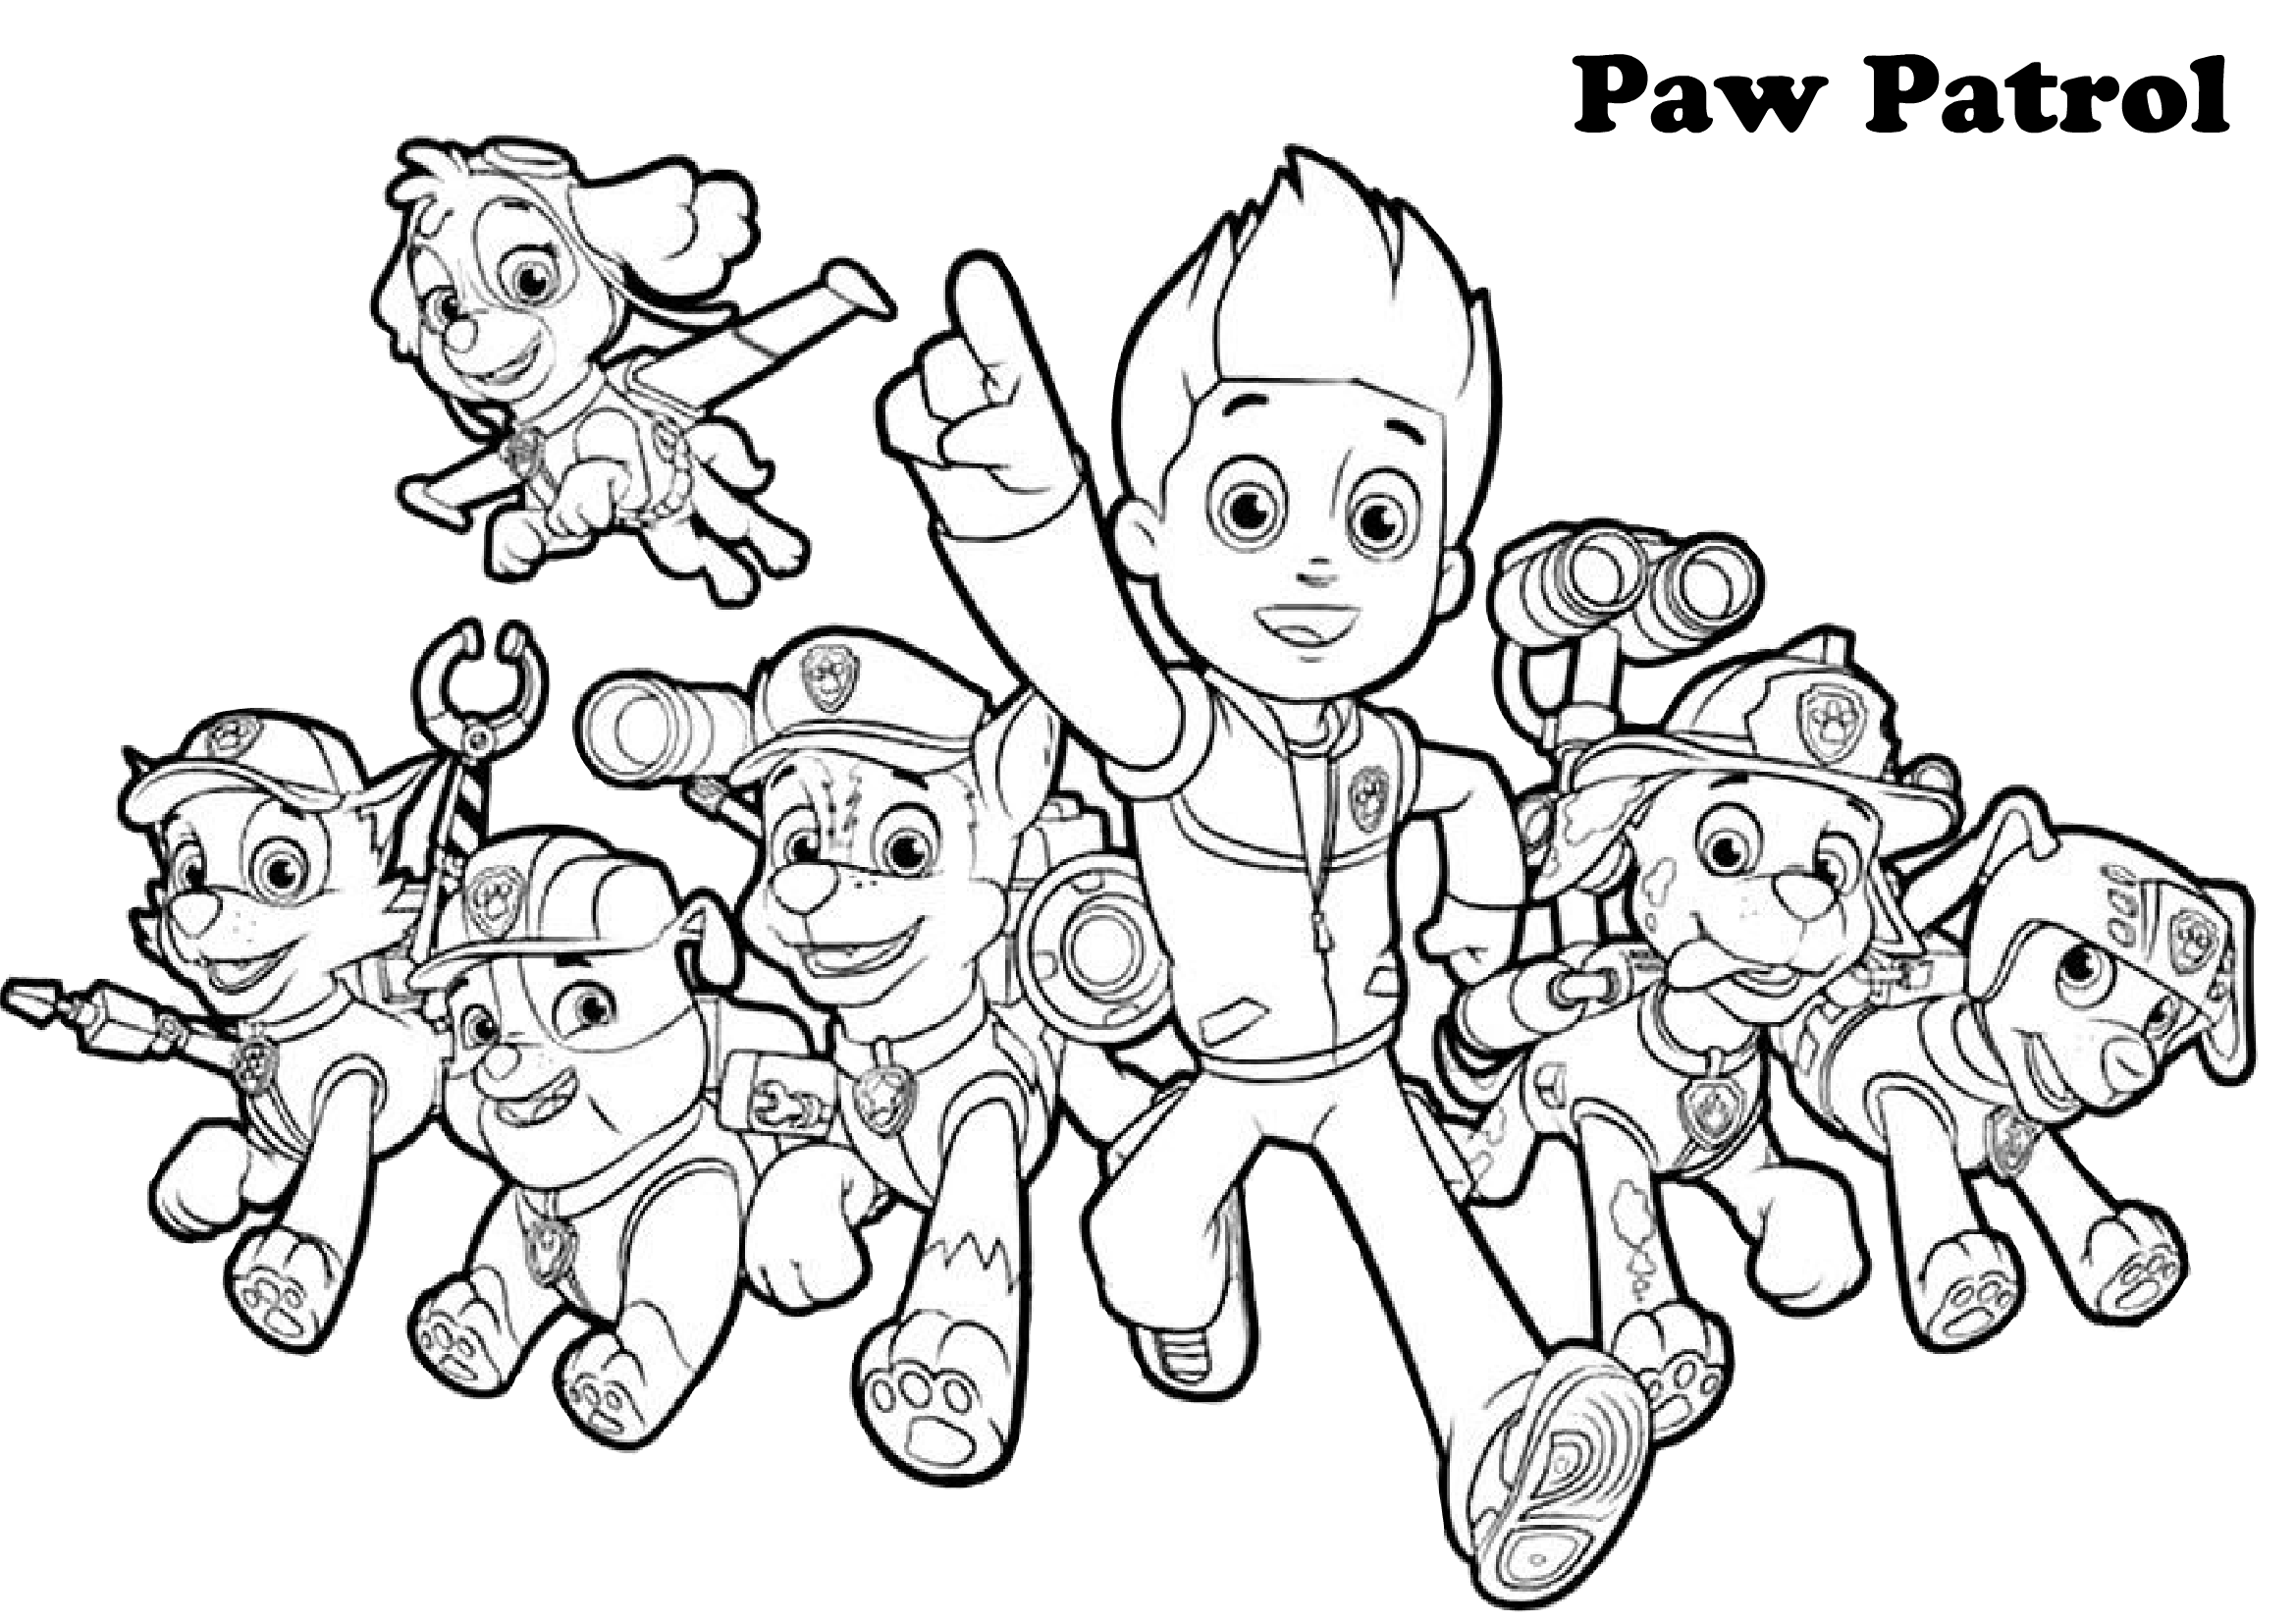 paw patrol coloring characters you can find here 4 free printable coloring pages of paw paw patrol coloring characters